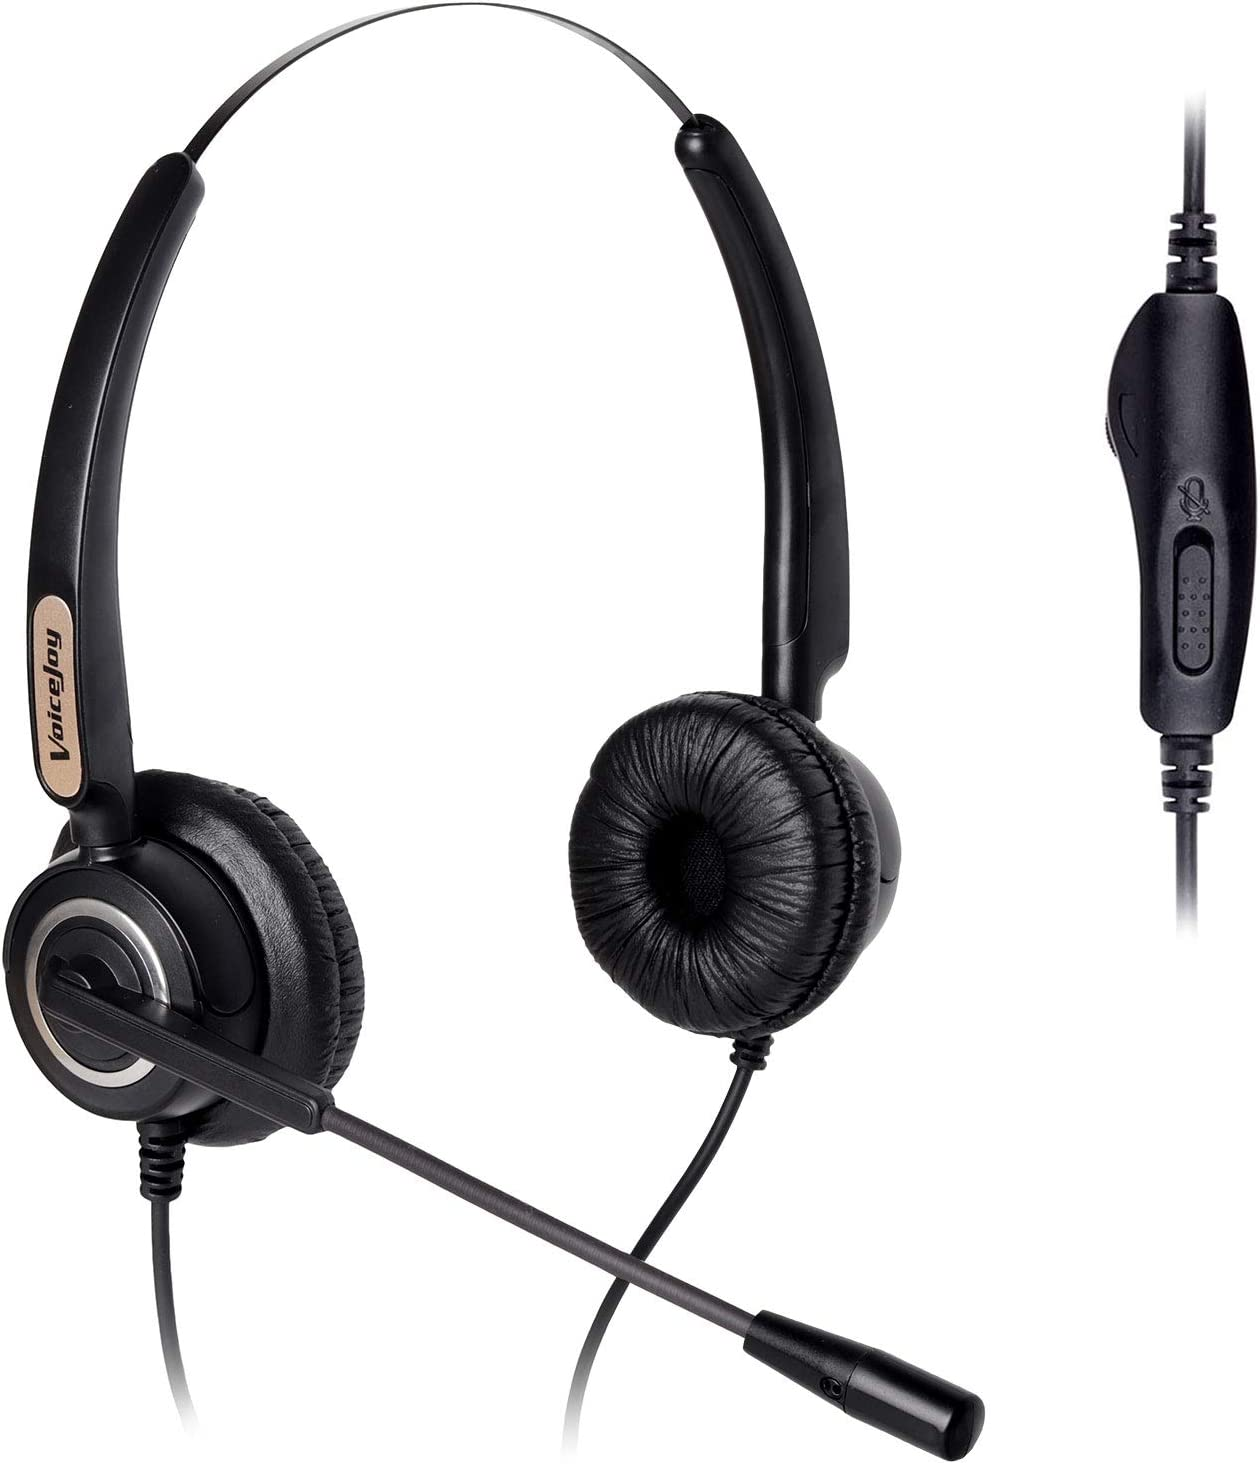 Volume and Mute Switch Headphone Office Binaural Headset with Microphone RJ9 Plug Only for Cisco IP Phones 794X 796X 797X 69XX Series and 8811,8841,8851,8861,8941,8945,8961,9951,9971 etc